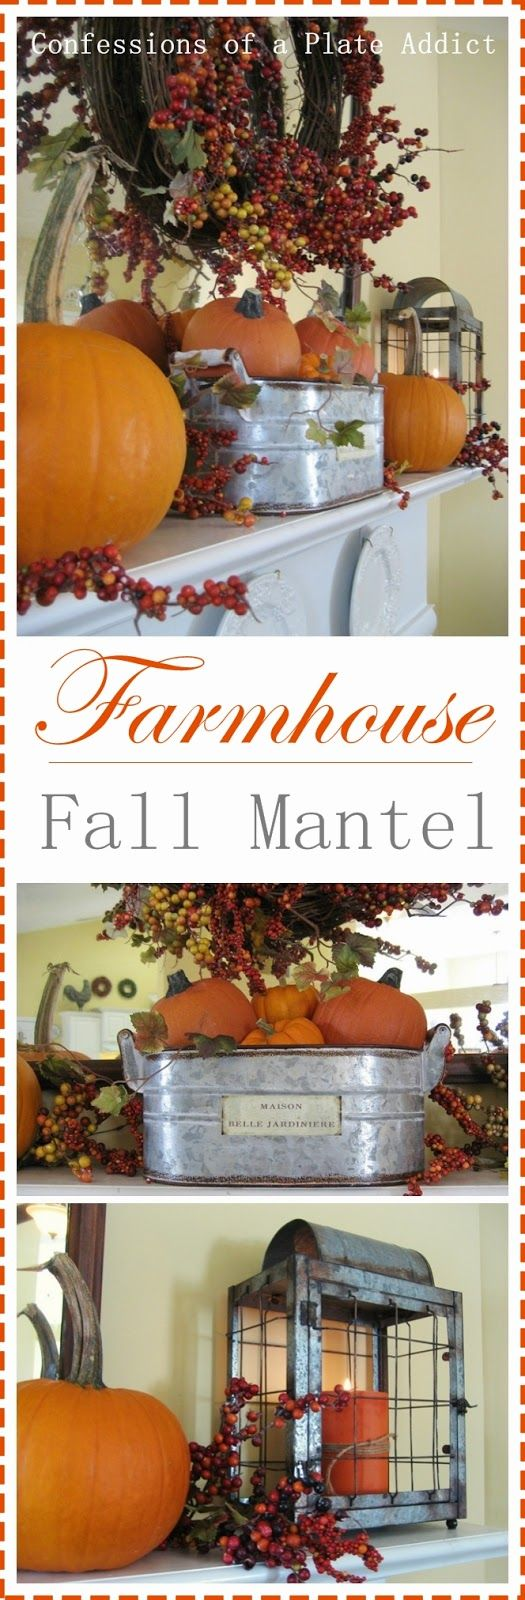 We finally had a bit of cool weather this week and it inspired me to get a move on and decorate my mantel for fall! I decided to continue th...